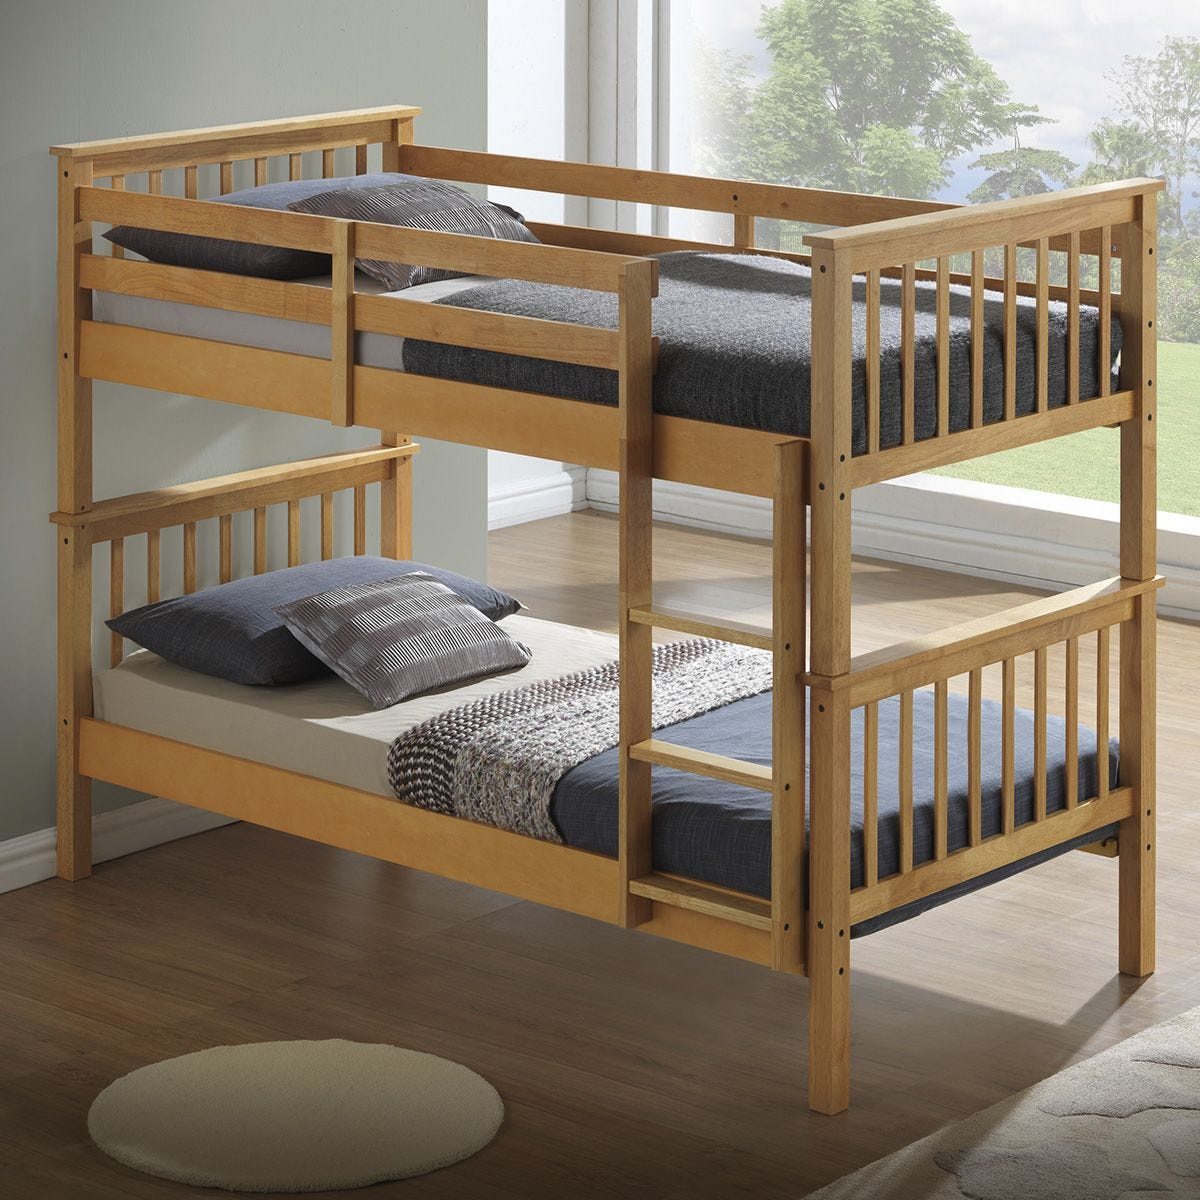 The Artisan Bed Compay Bunk Bed with Flat Headboard - Beech